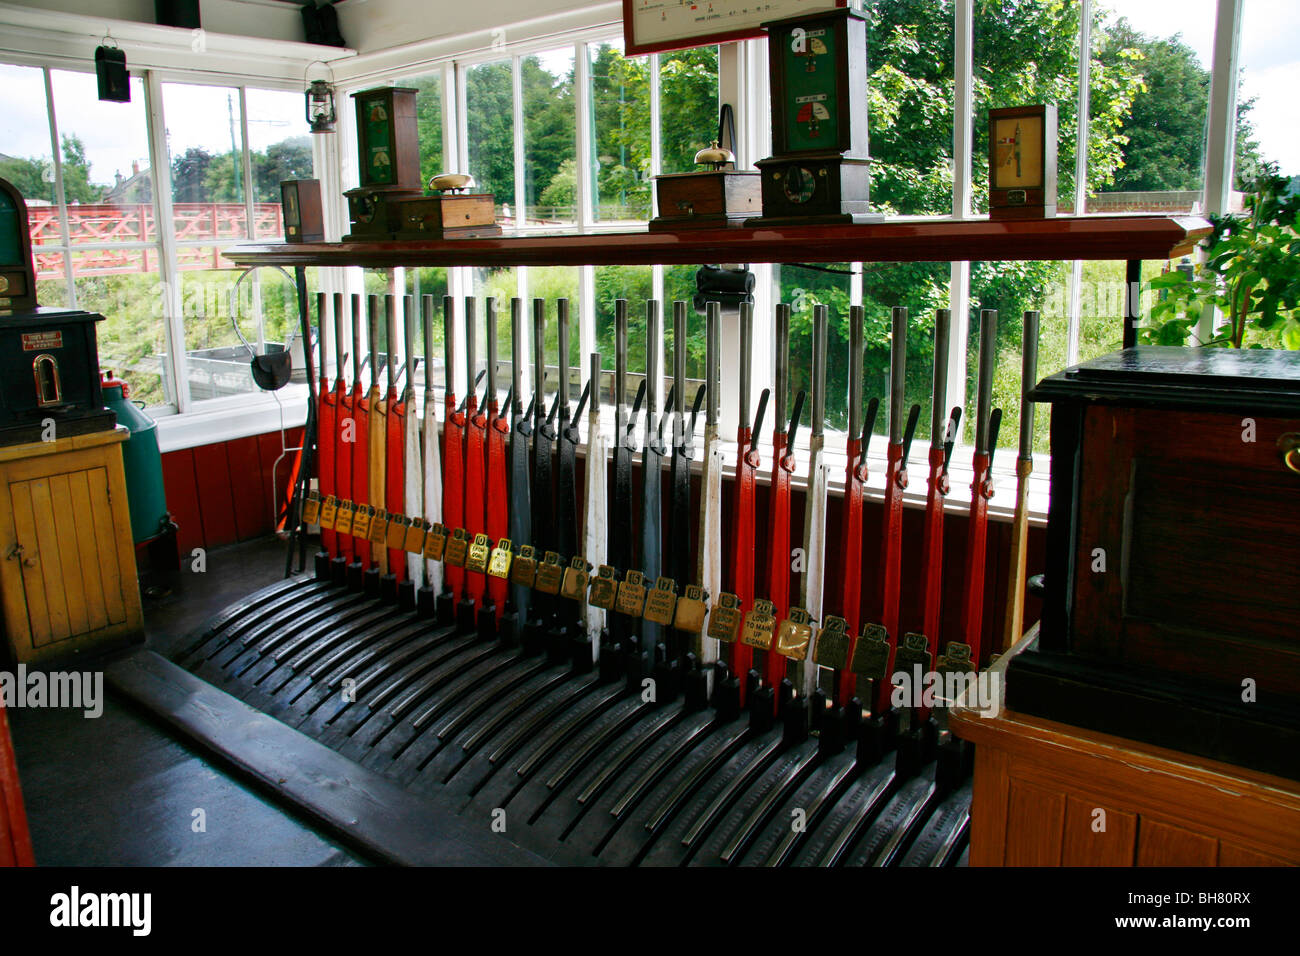 Signal box, showing all the levers which were used to change the points on the railway line.  Taken at Beamish in - Stock Image